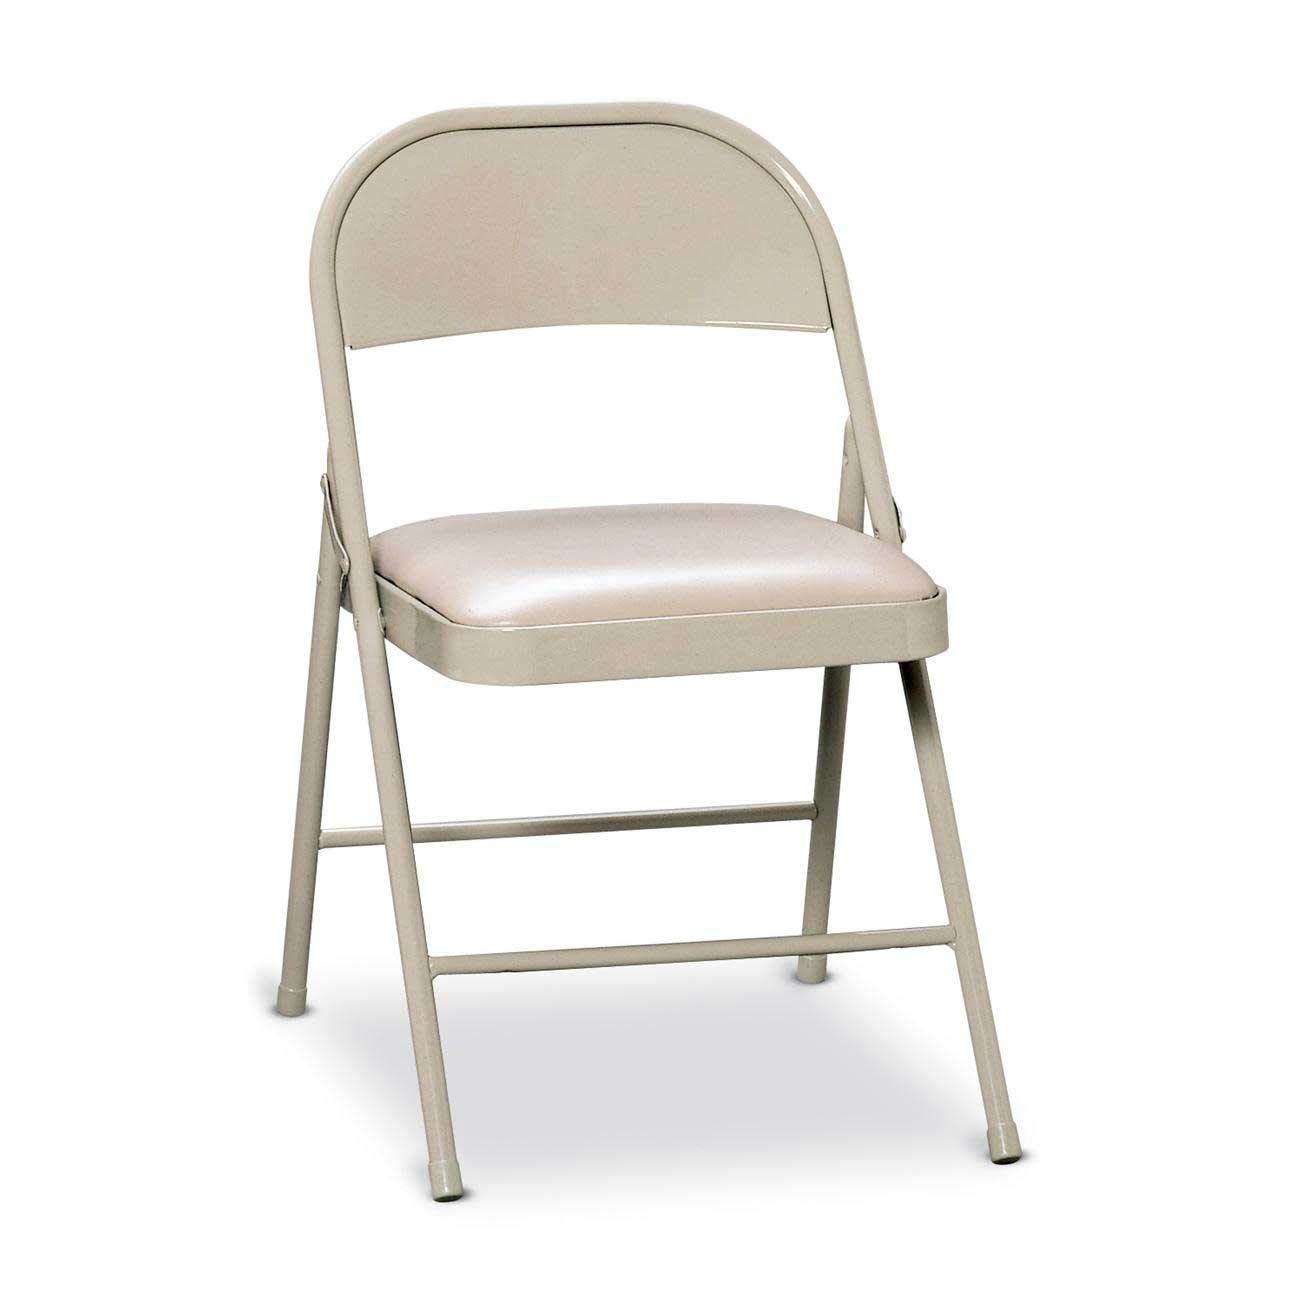 HON white metal folding padded chairs